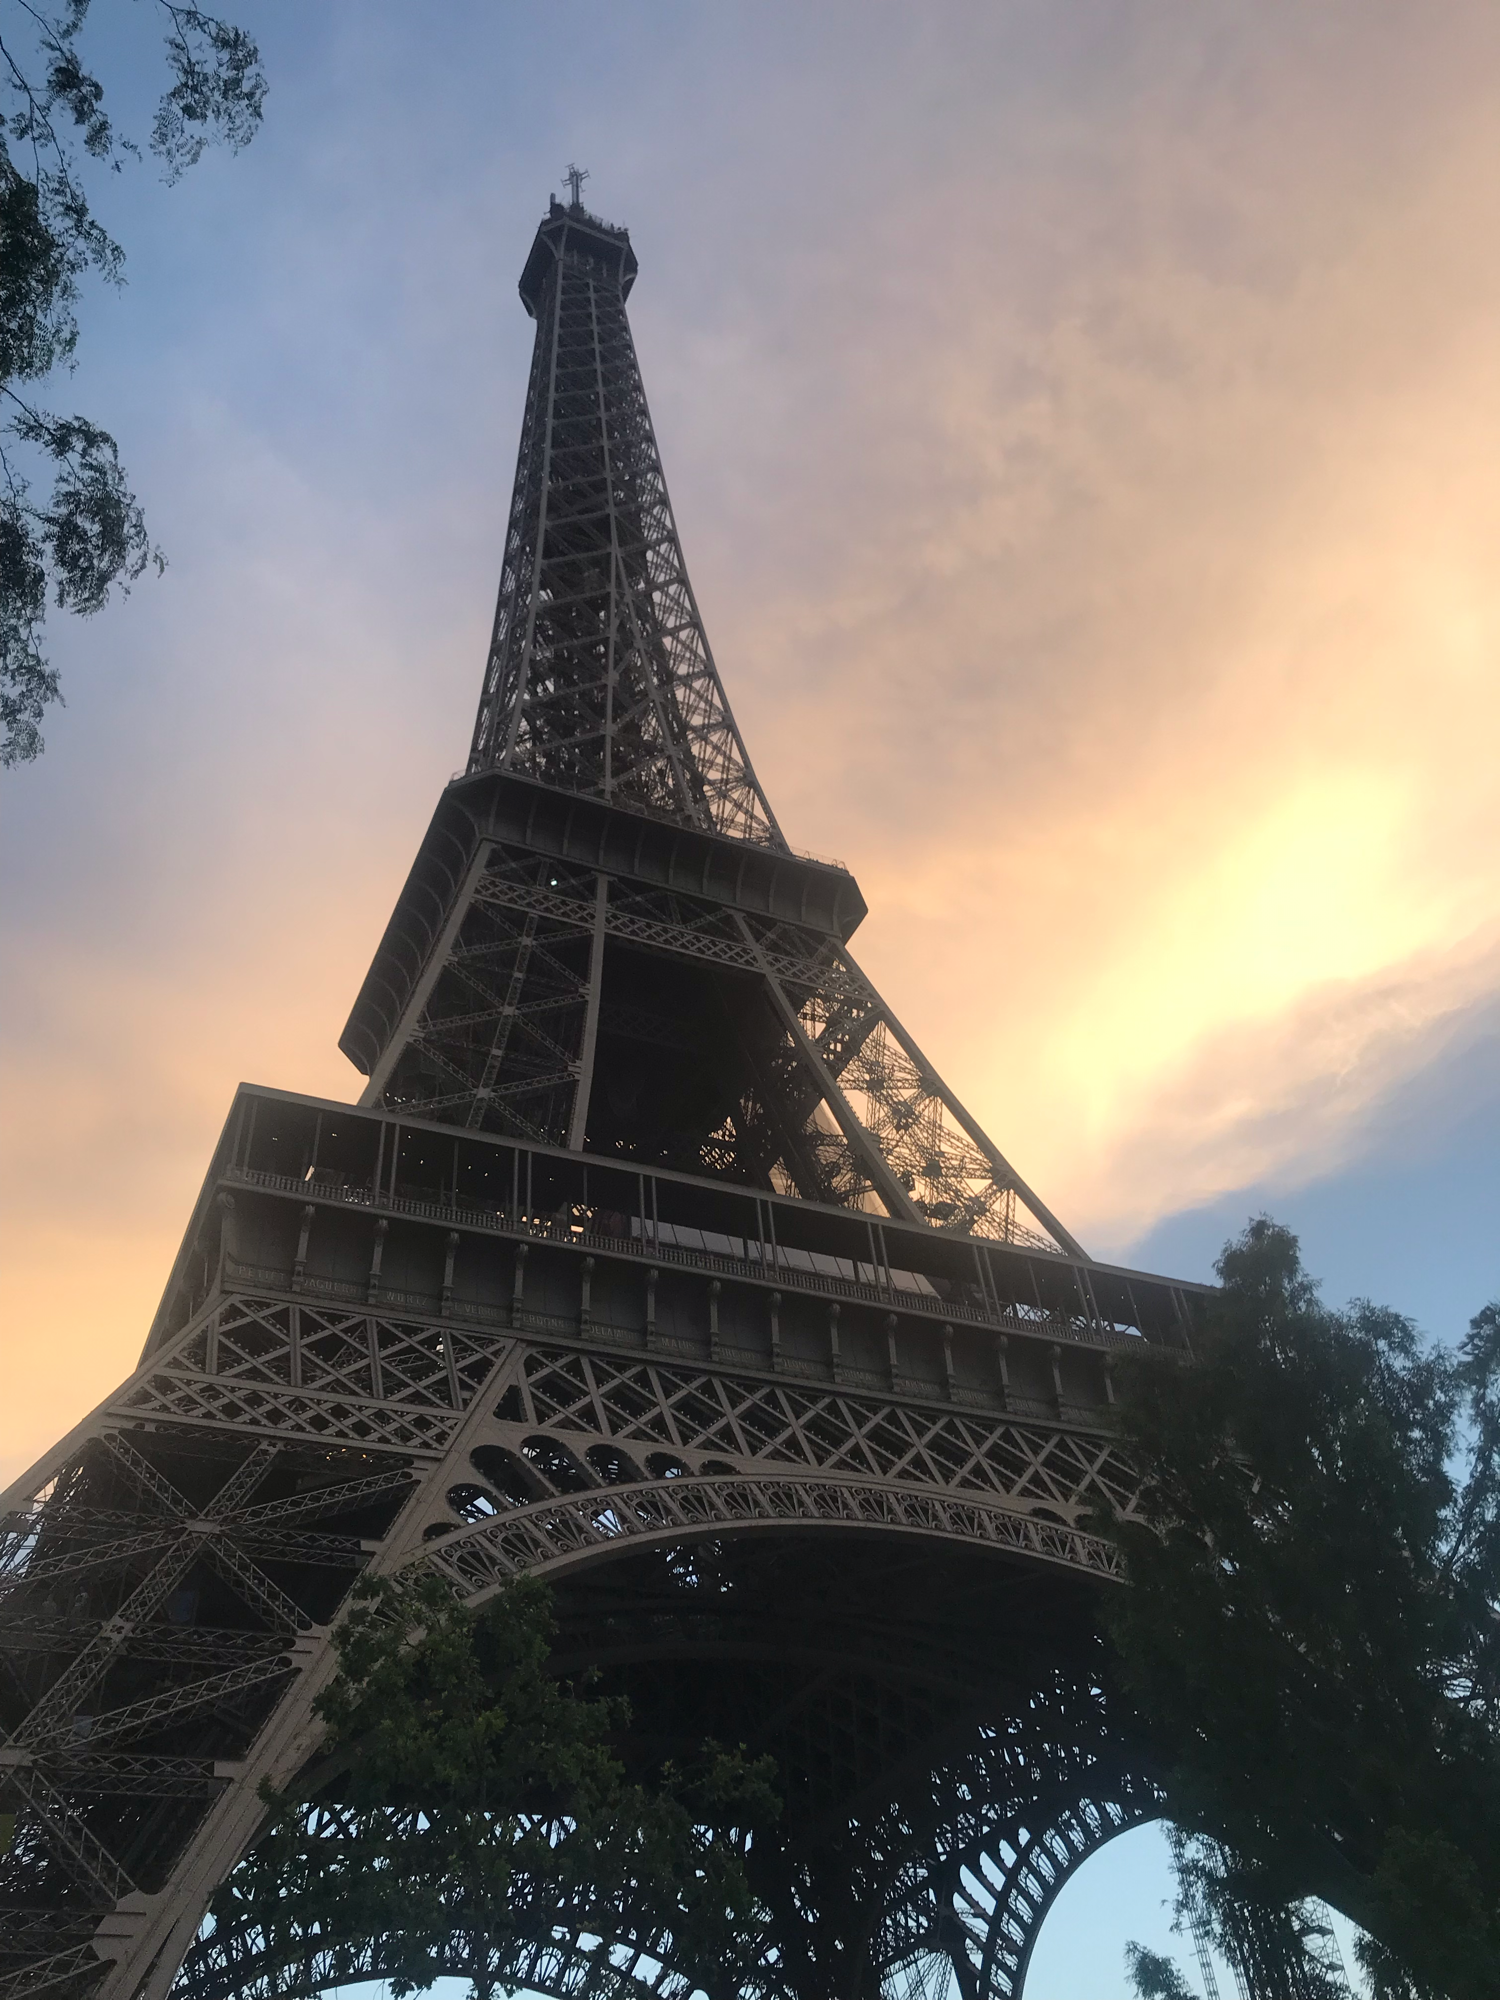 I was recently in France and I got this picture of the Eiffel Tower